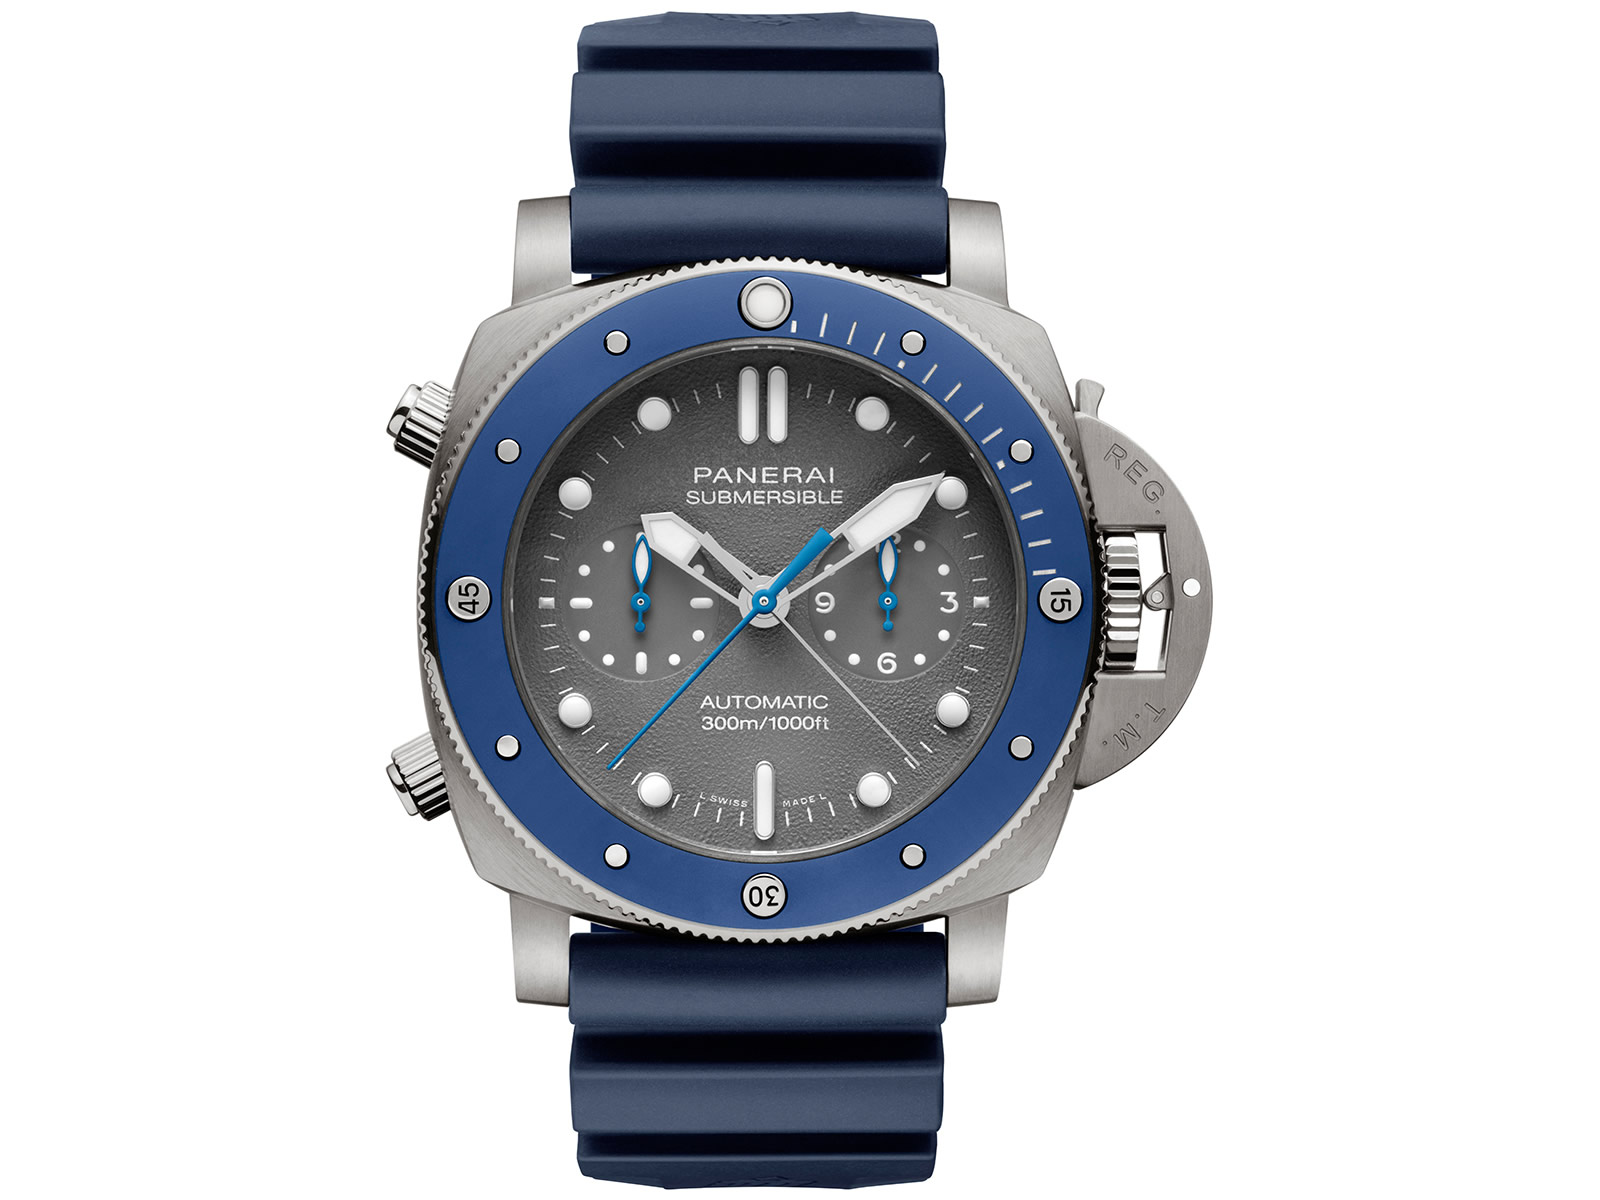 pam00982-officine-panerai-submersible-chrono-guillaume-nery-edition-grey-dial-5-.jpg